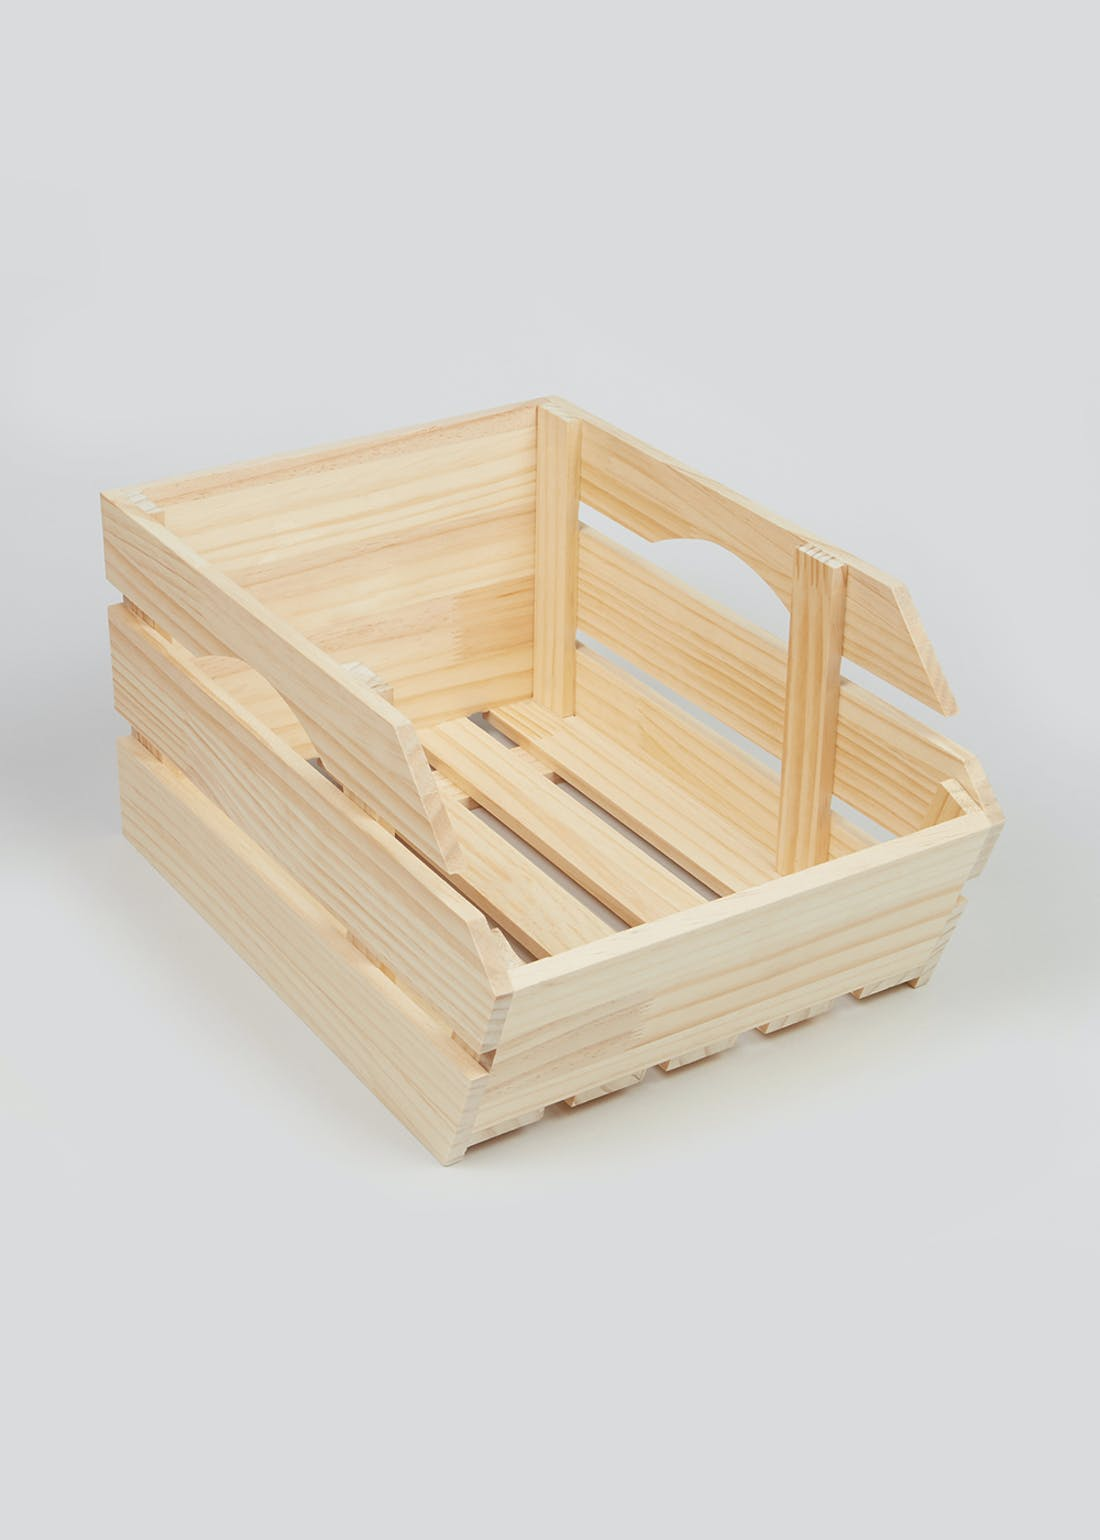 Stackage Wooden Kitchen Crate (36cm x 20cm x 15cm)